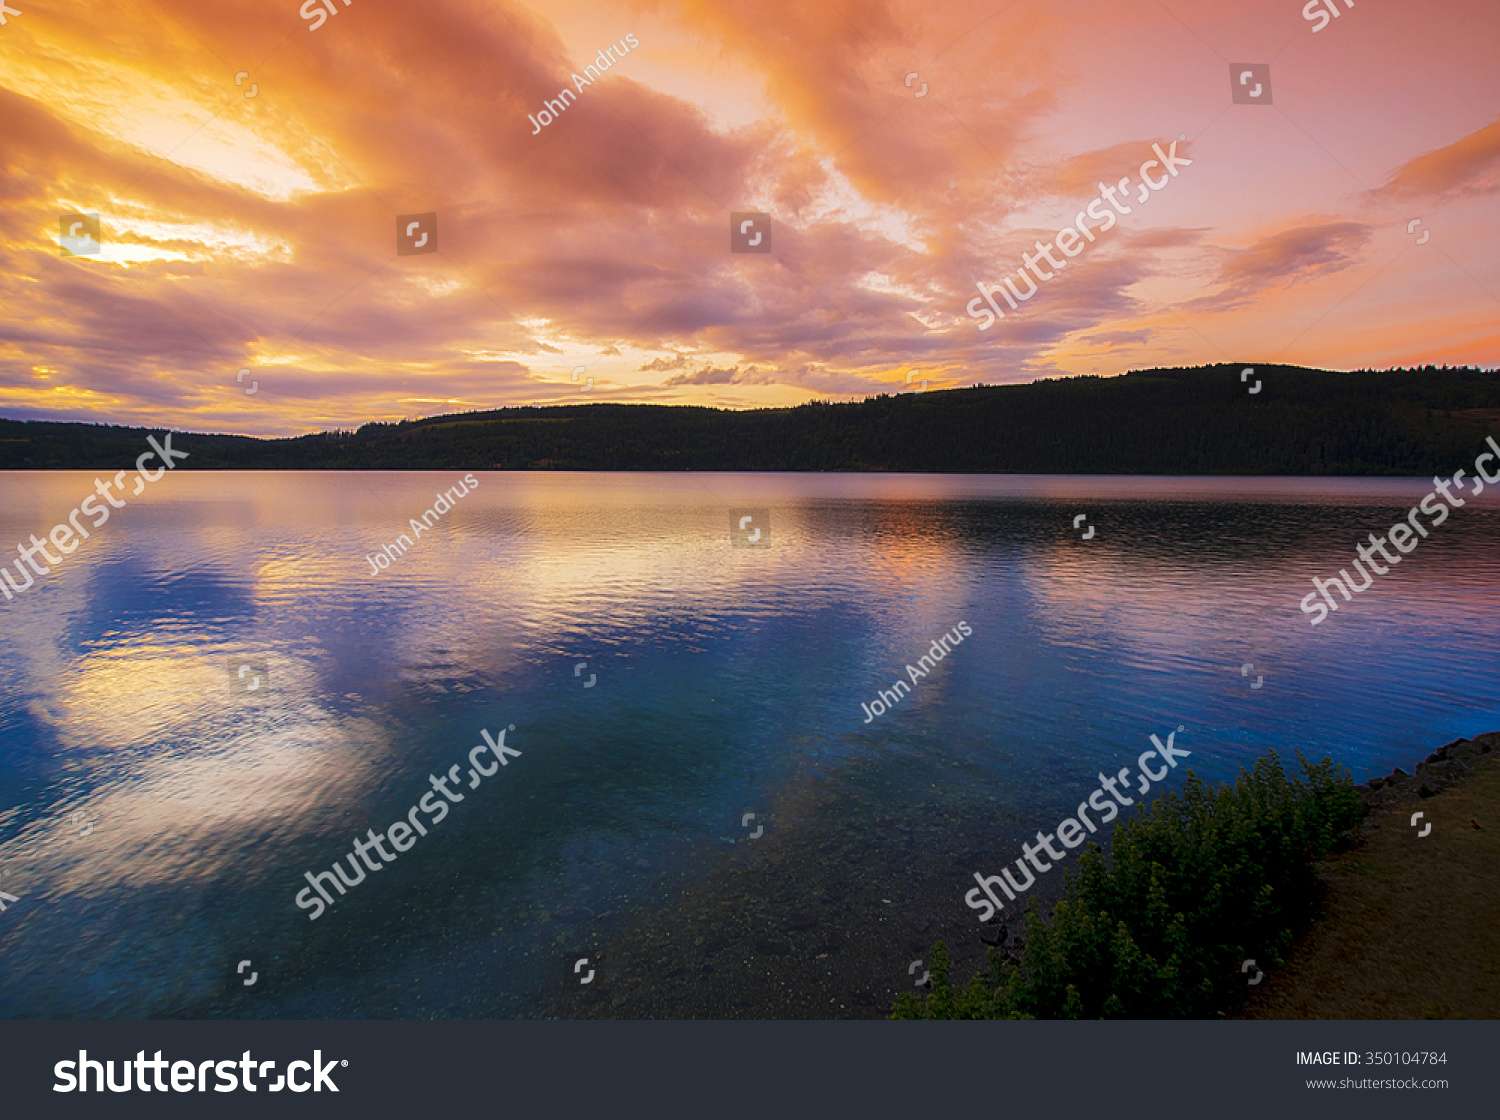 Sunrise Discovery Bay Washington Showing Silhouetted Stock Photo Edit Now 350104784